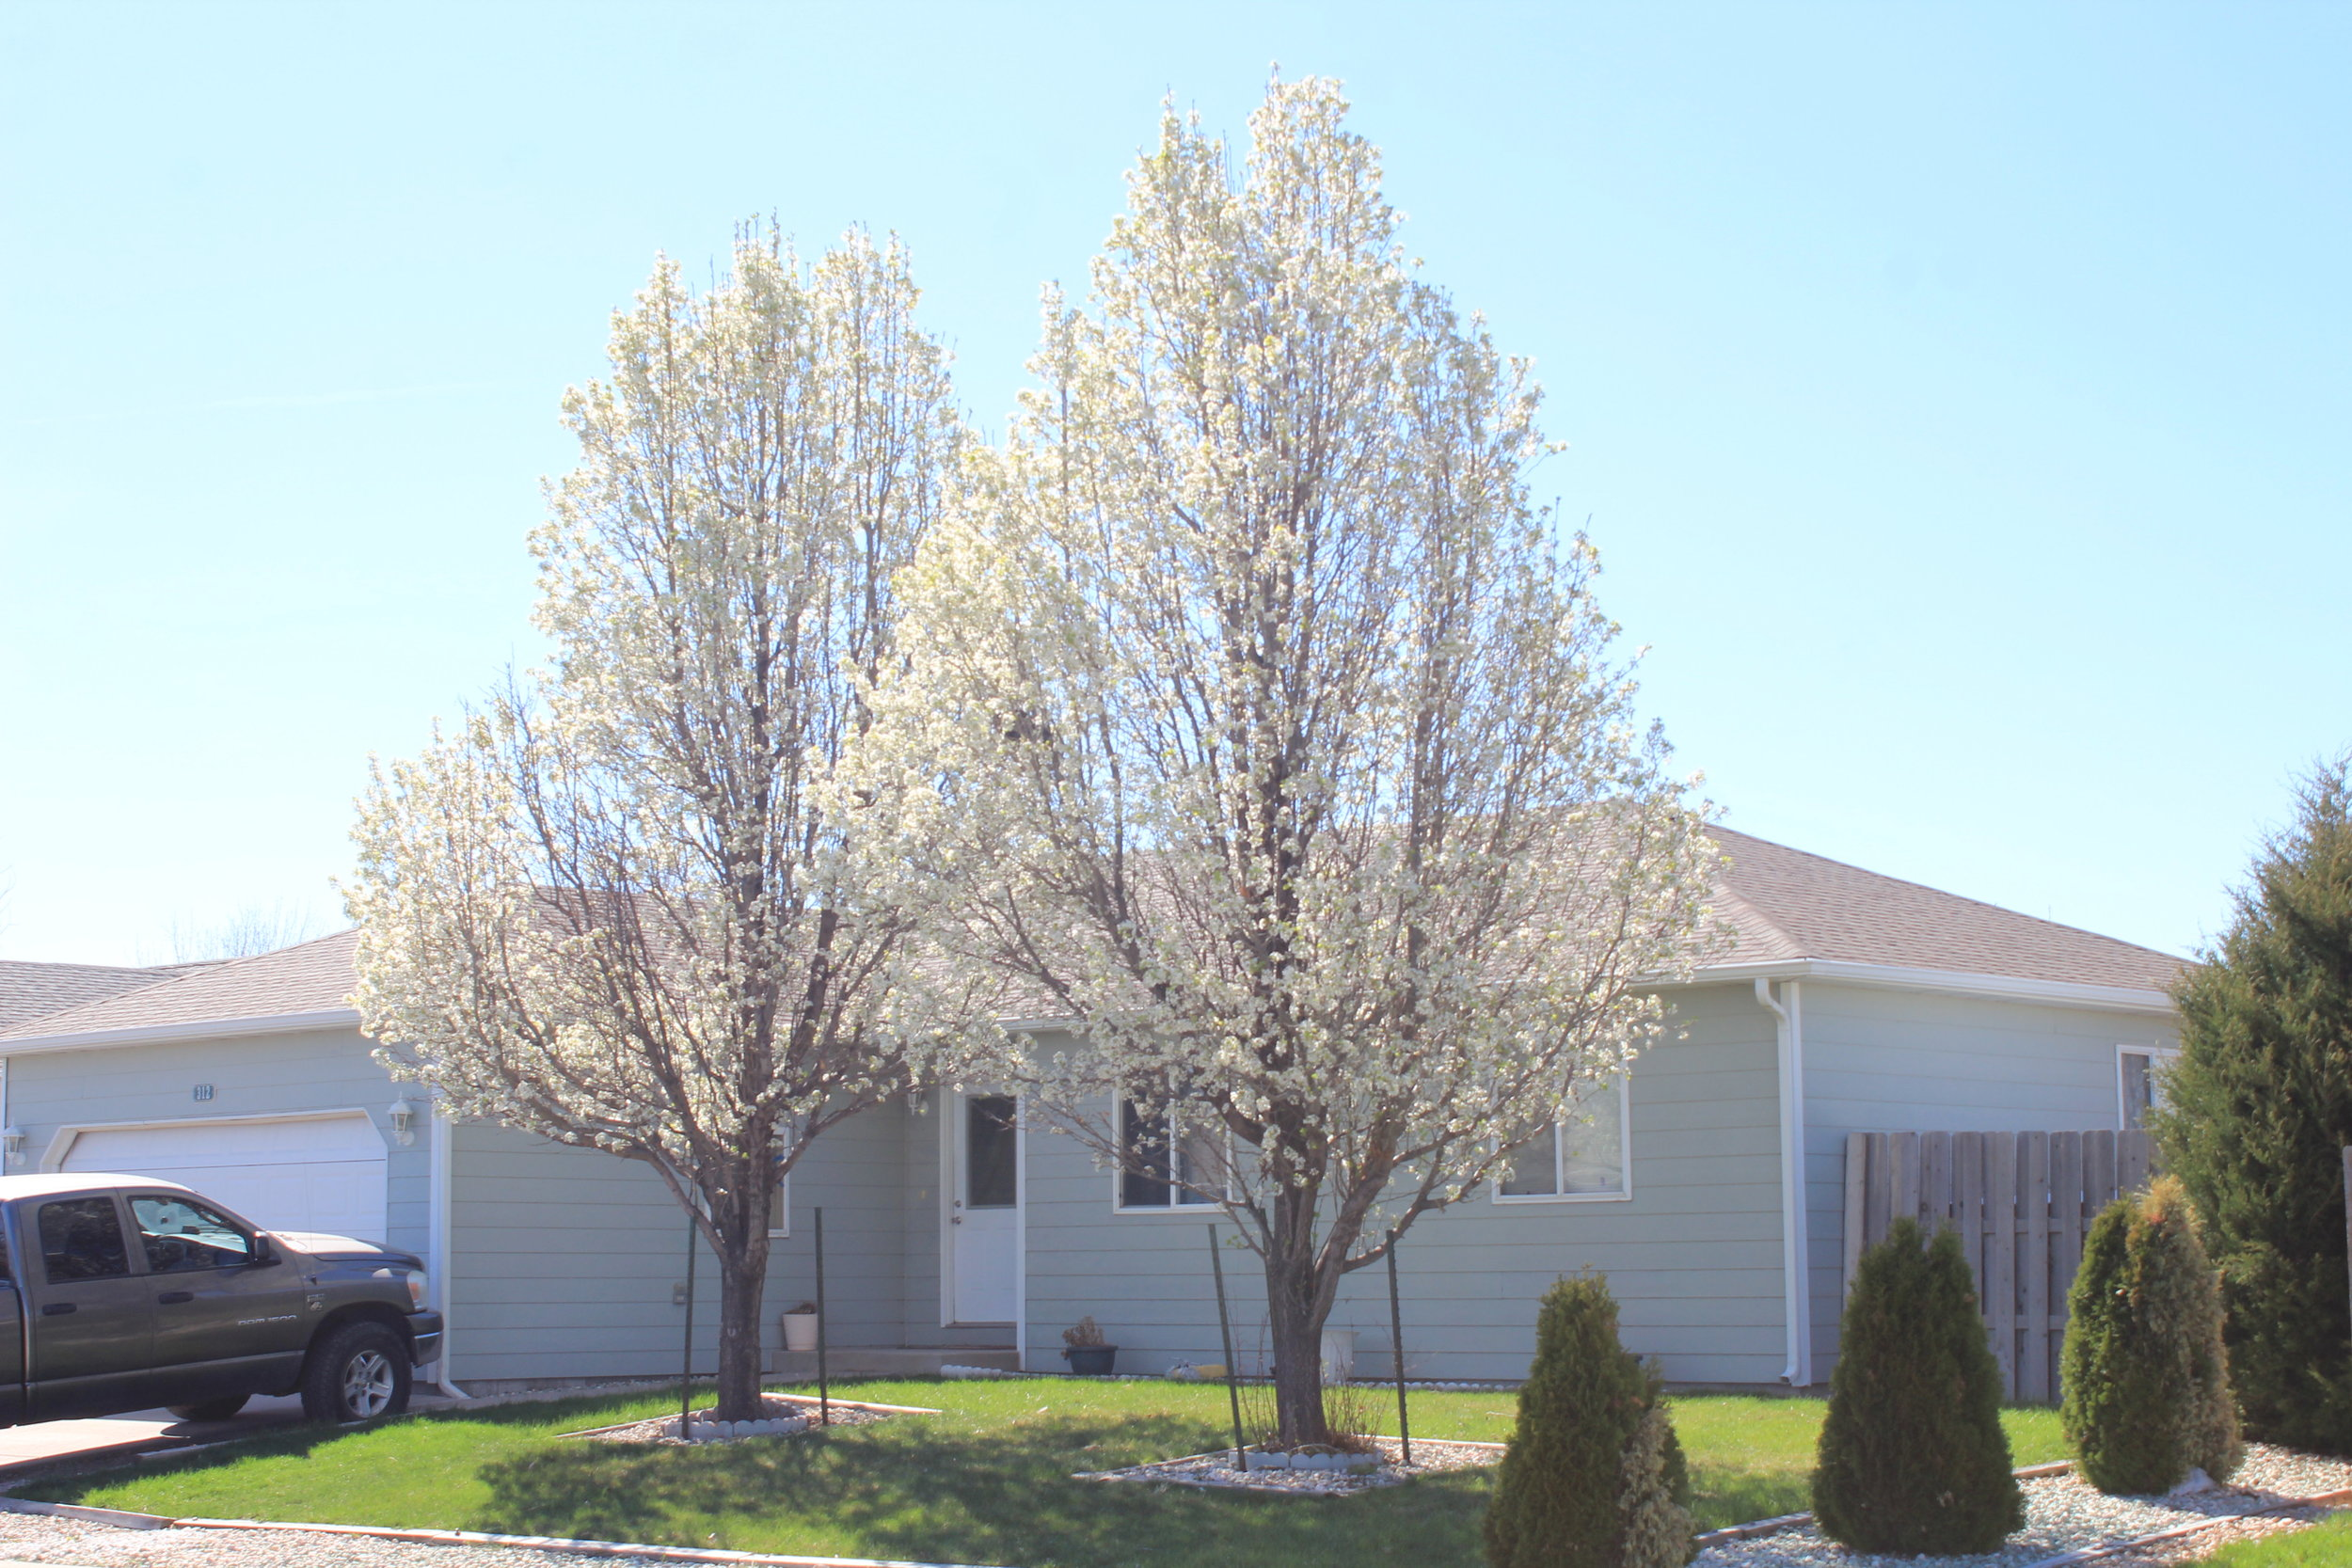 312 Gateway Ave, Fort Morgan - 3 Bed,2 Bath 1864 Sq. Ft.Listed for : $239,900 Sold for:$230,000